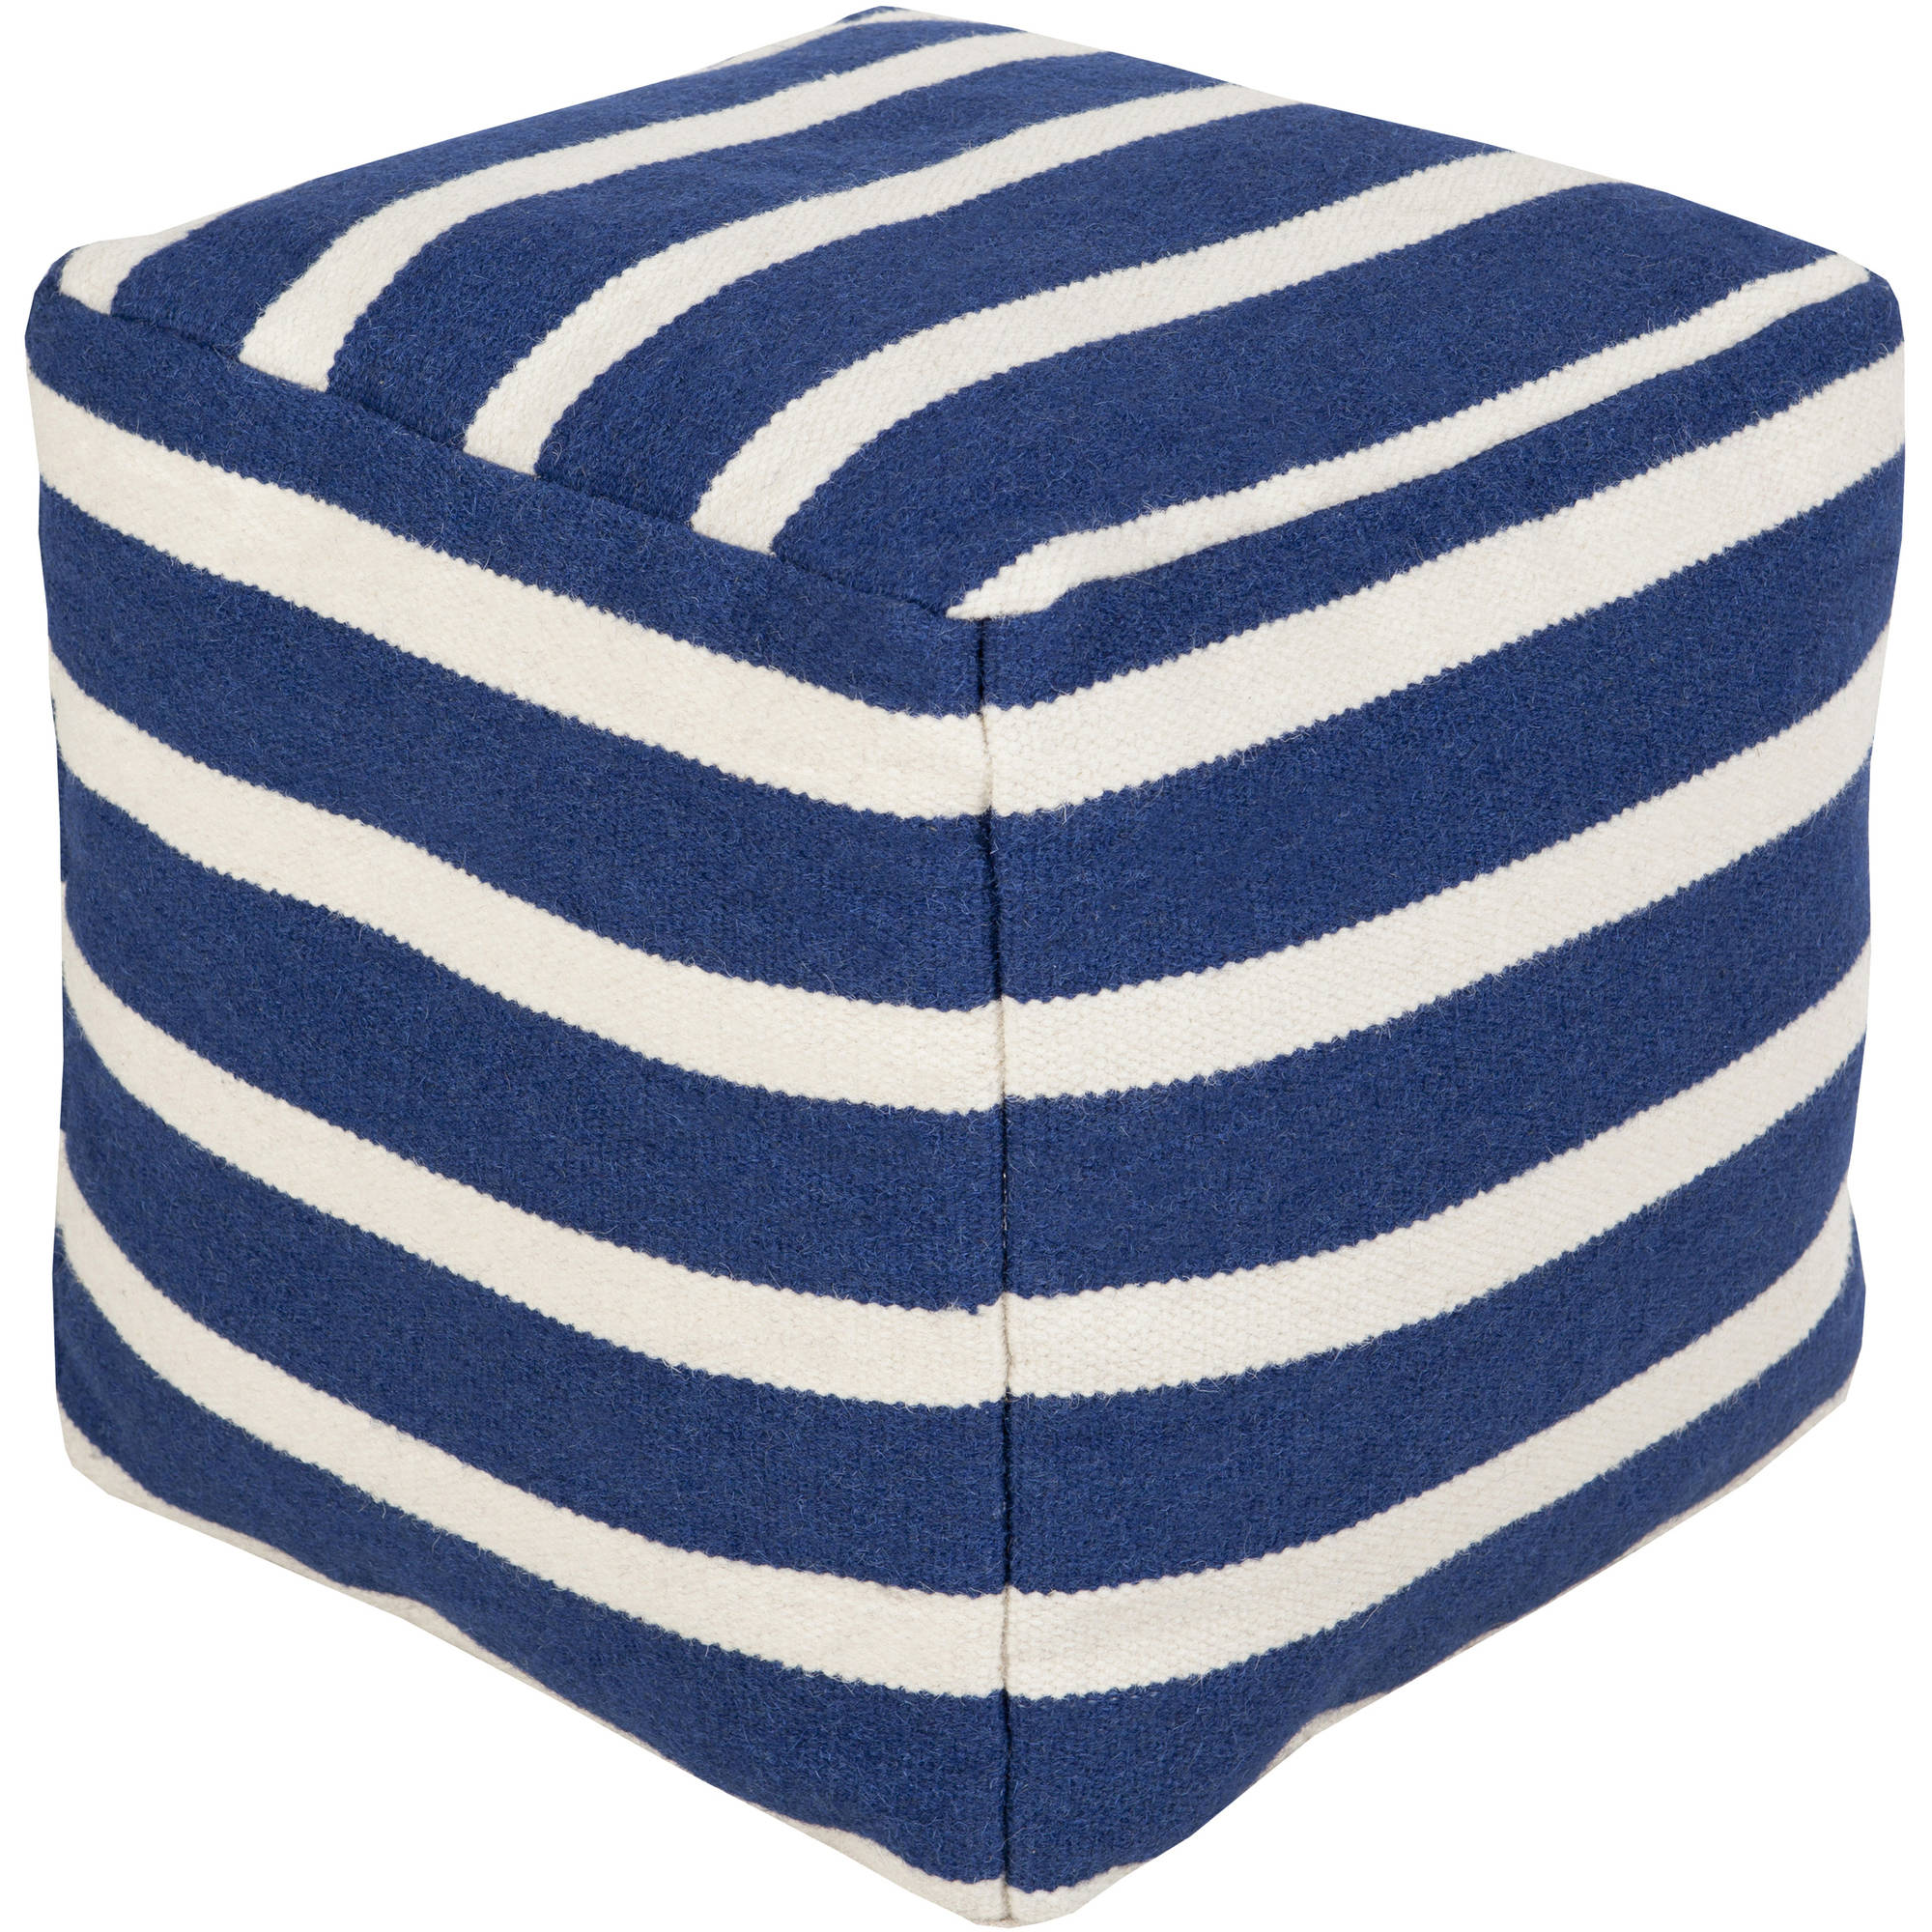 Art of Knot Davenport Hand Made Striking Stripe Wool Pouf, Blue